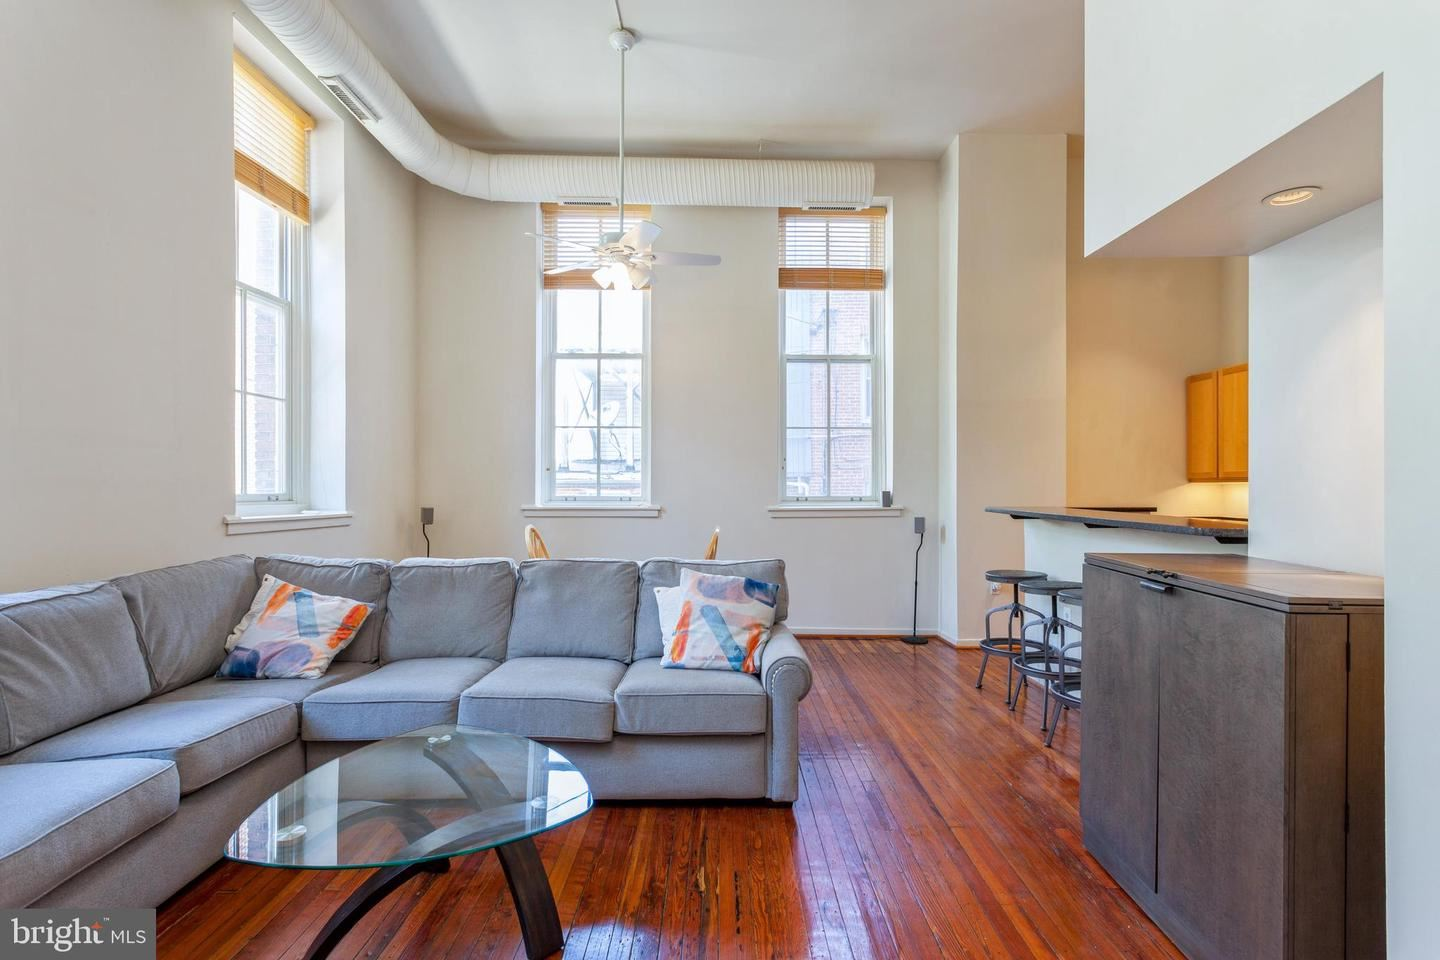 112 E WEST ST #102, Baltimore, MD 21230 - MLS#: MDBA548456